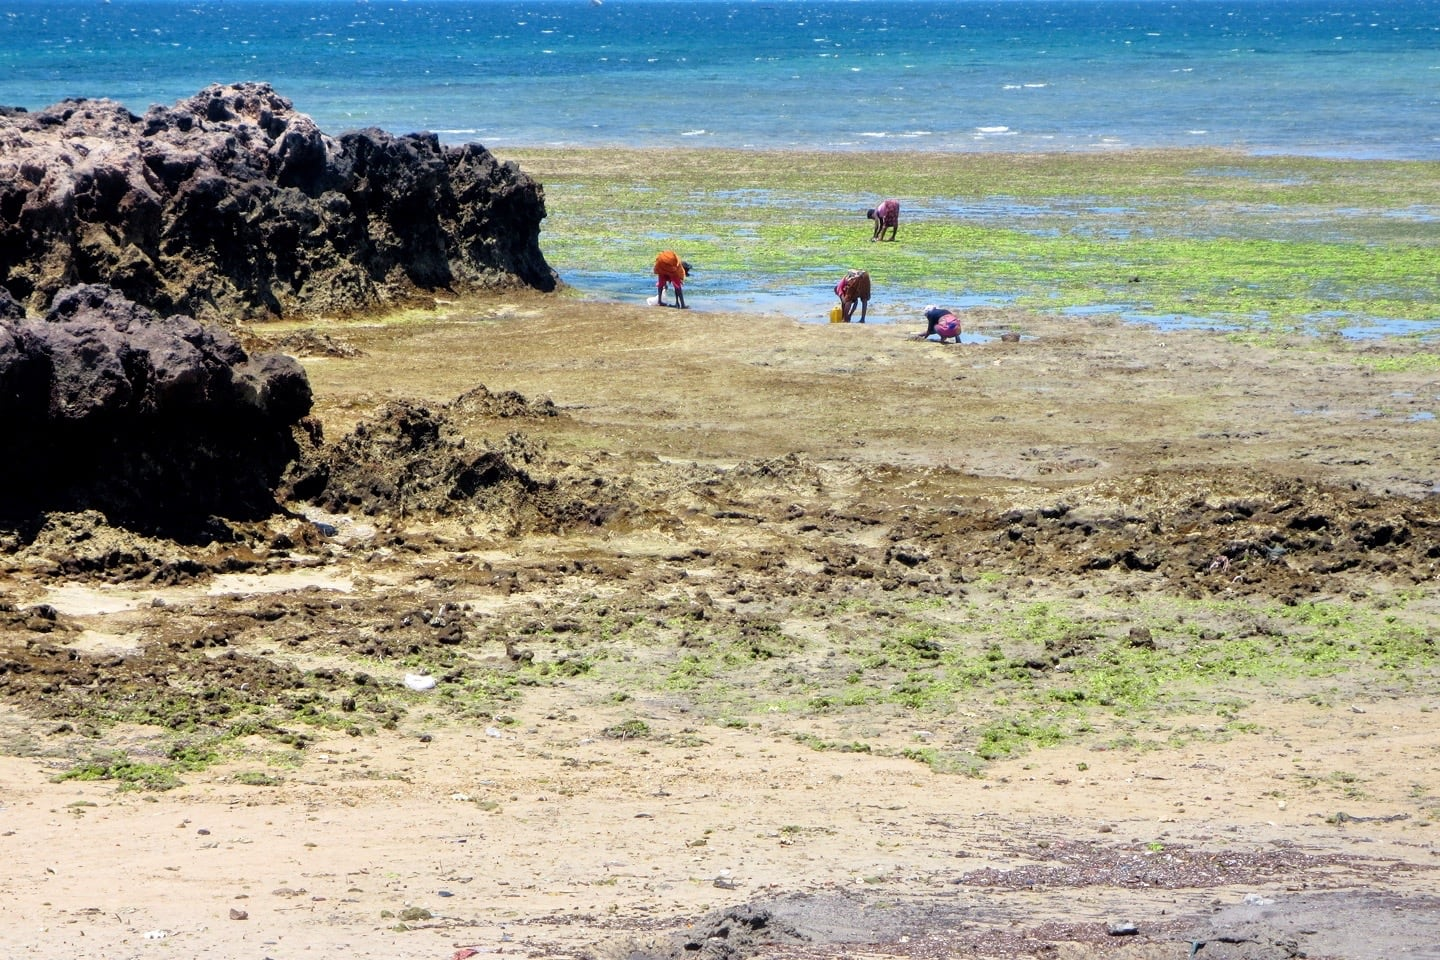 Mozambique Island seaweed harvesting